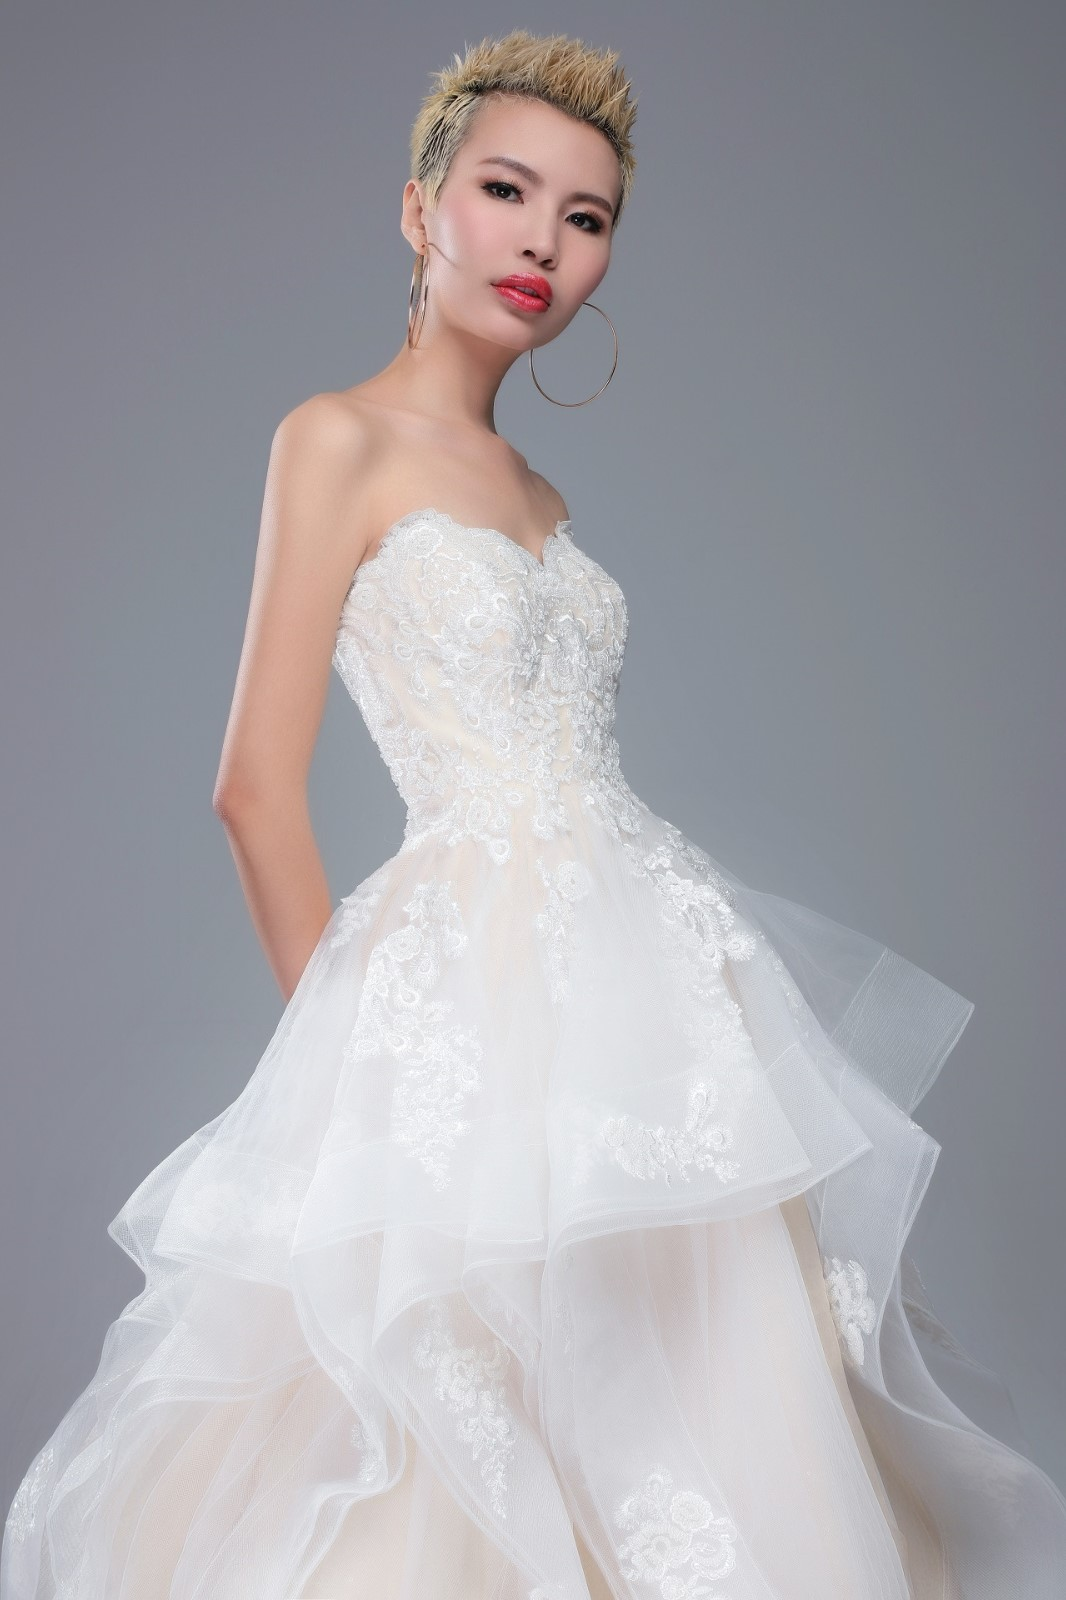 Bridal gownWedding dresses Shop offers Cheap